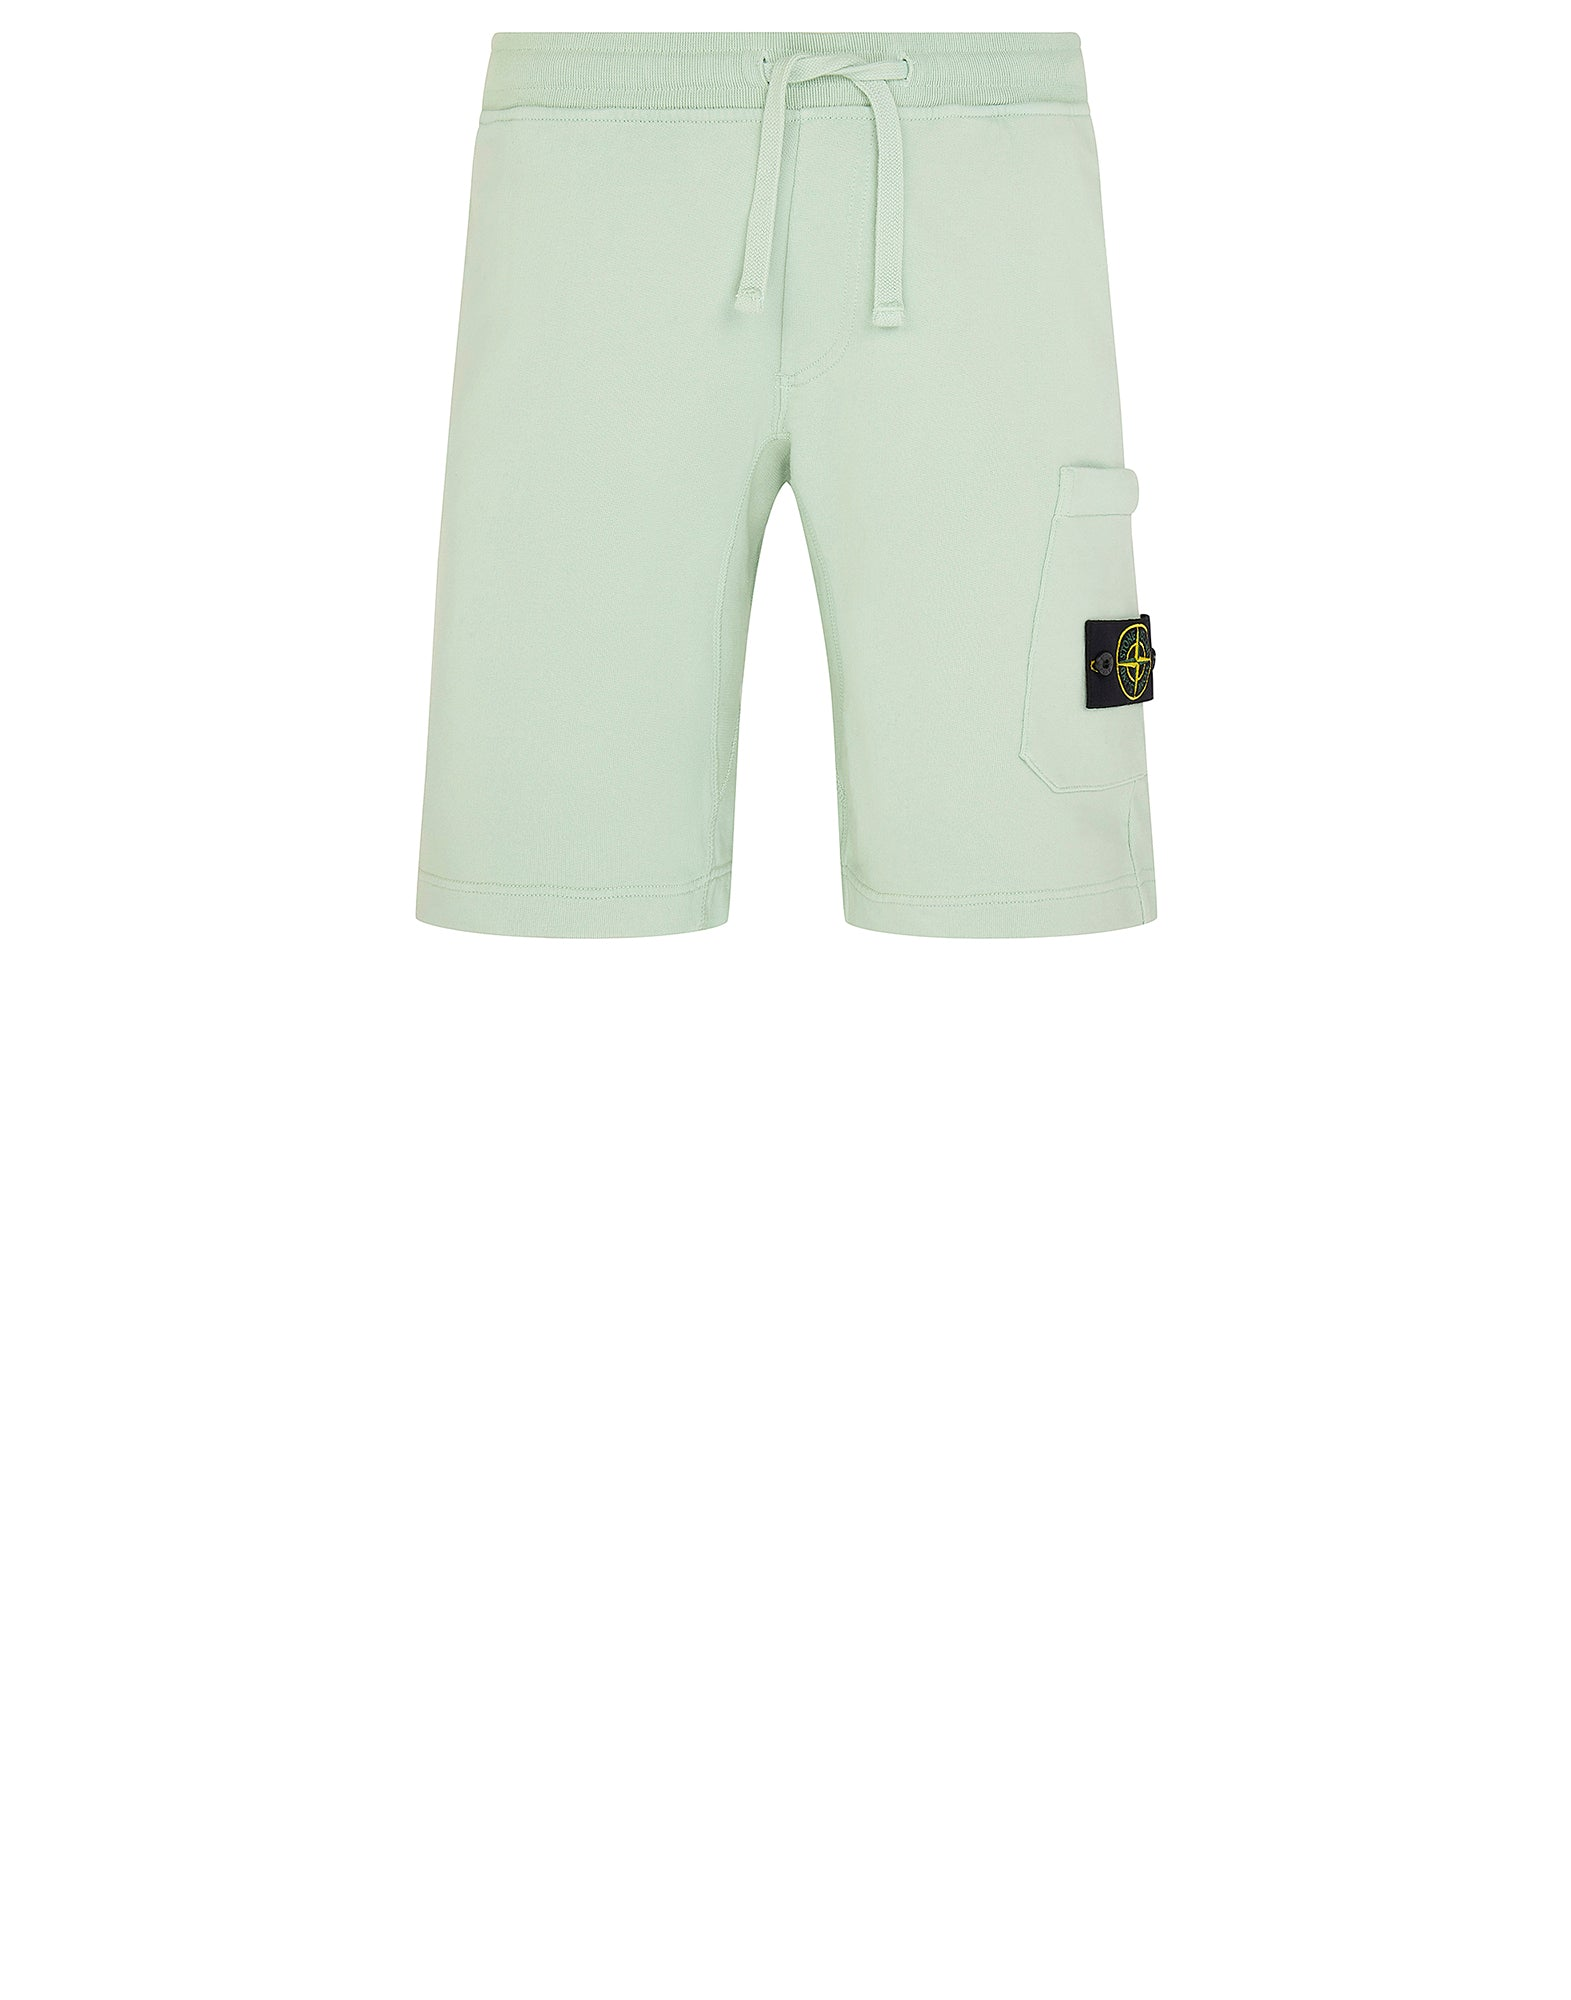 60840 Cotton Fleece Bermuda Shorts in Green